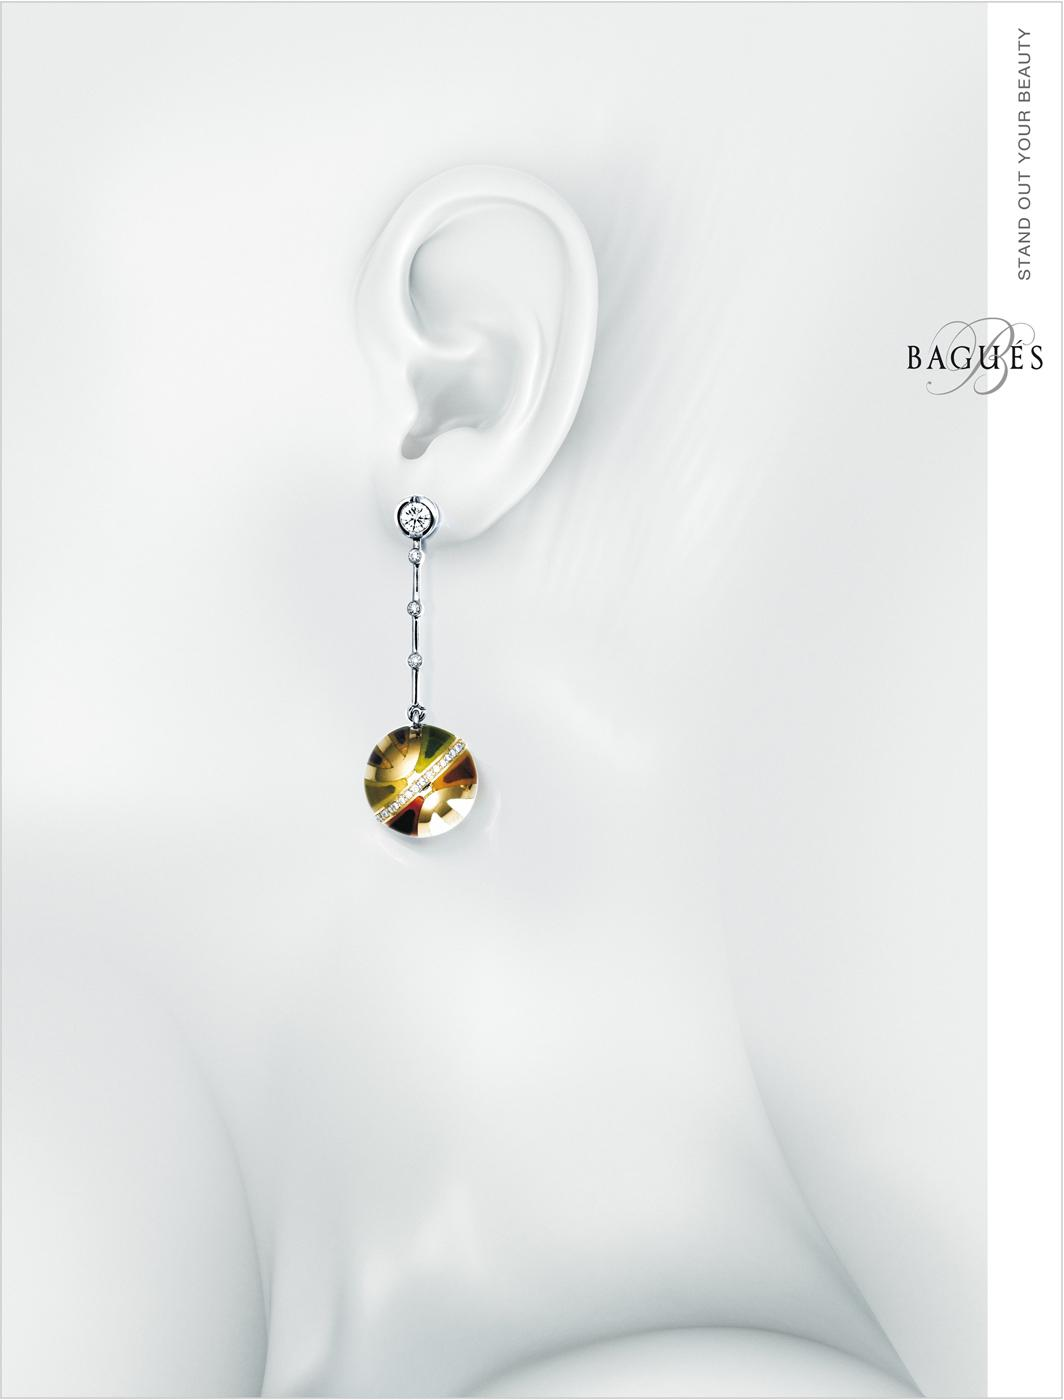 Bagues Jewelry Print Ad -  Earring